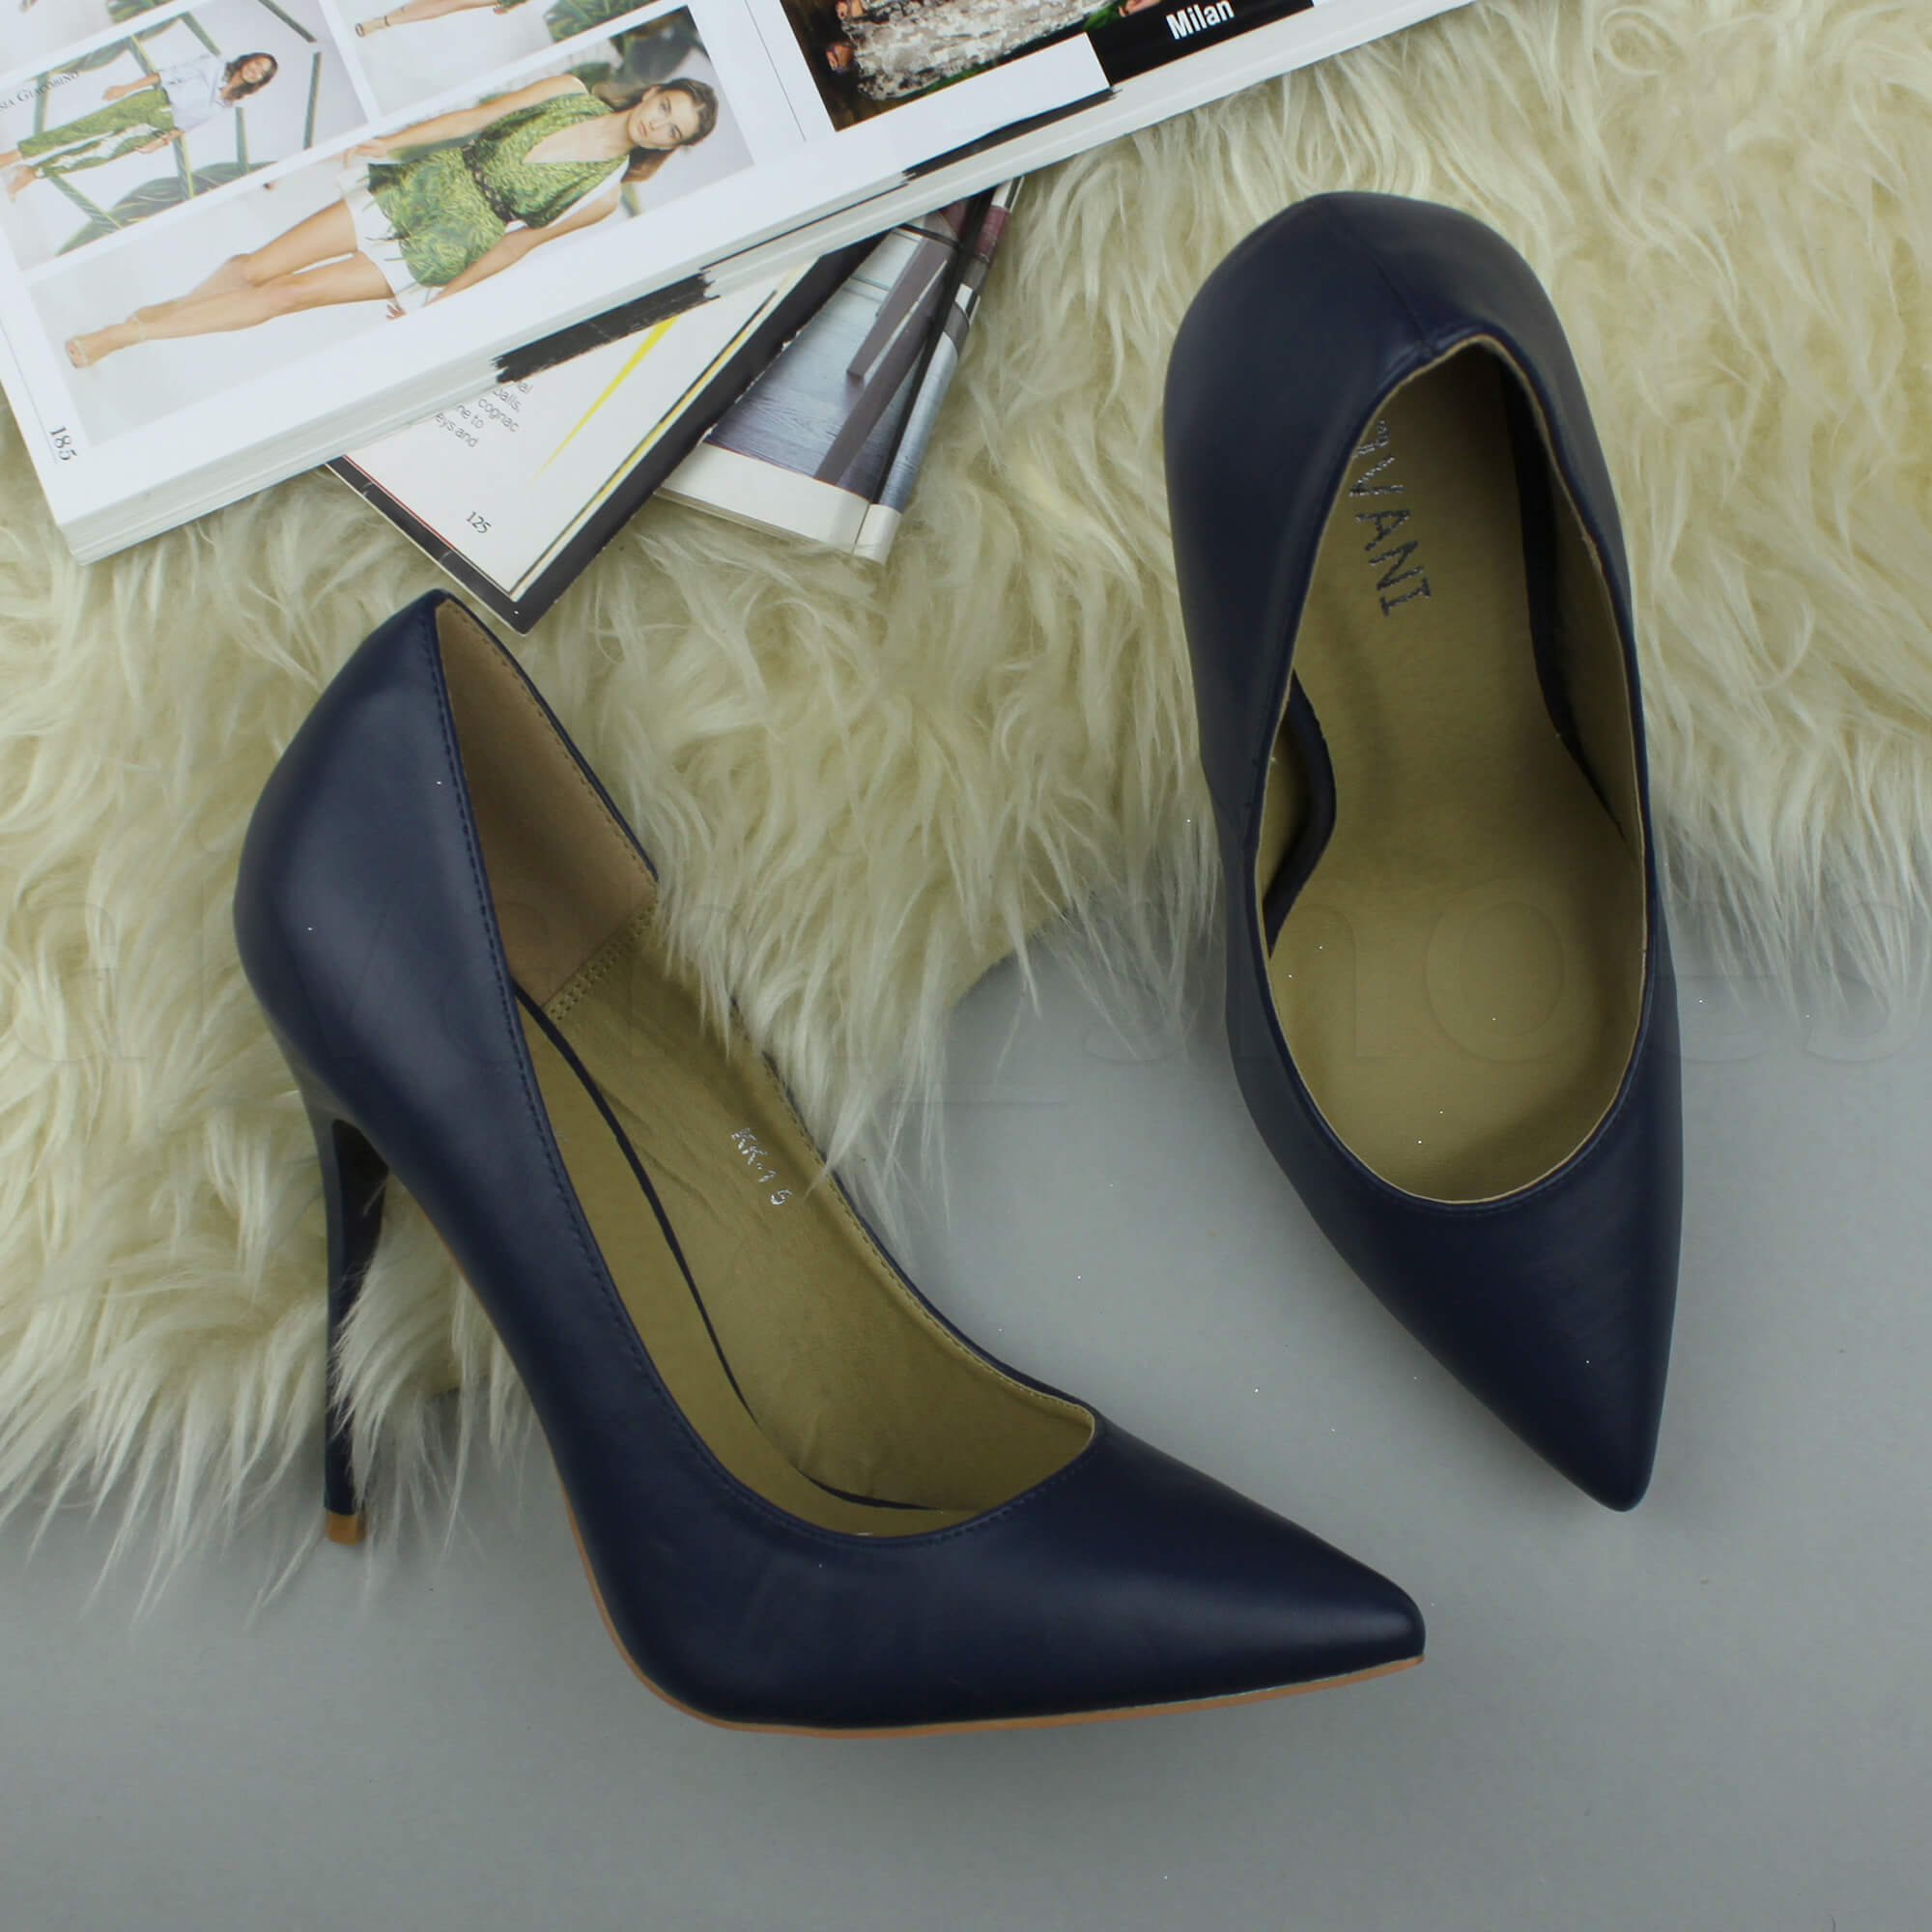 WOMENS-LADIES-HIGH-HEEL-POINTED-CONTRAST-COURT-SMART-PARTY-WORK-SHOES-PUMPS-SIZE thumbnail 107